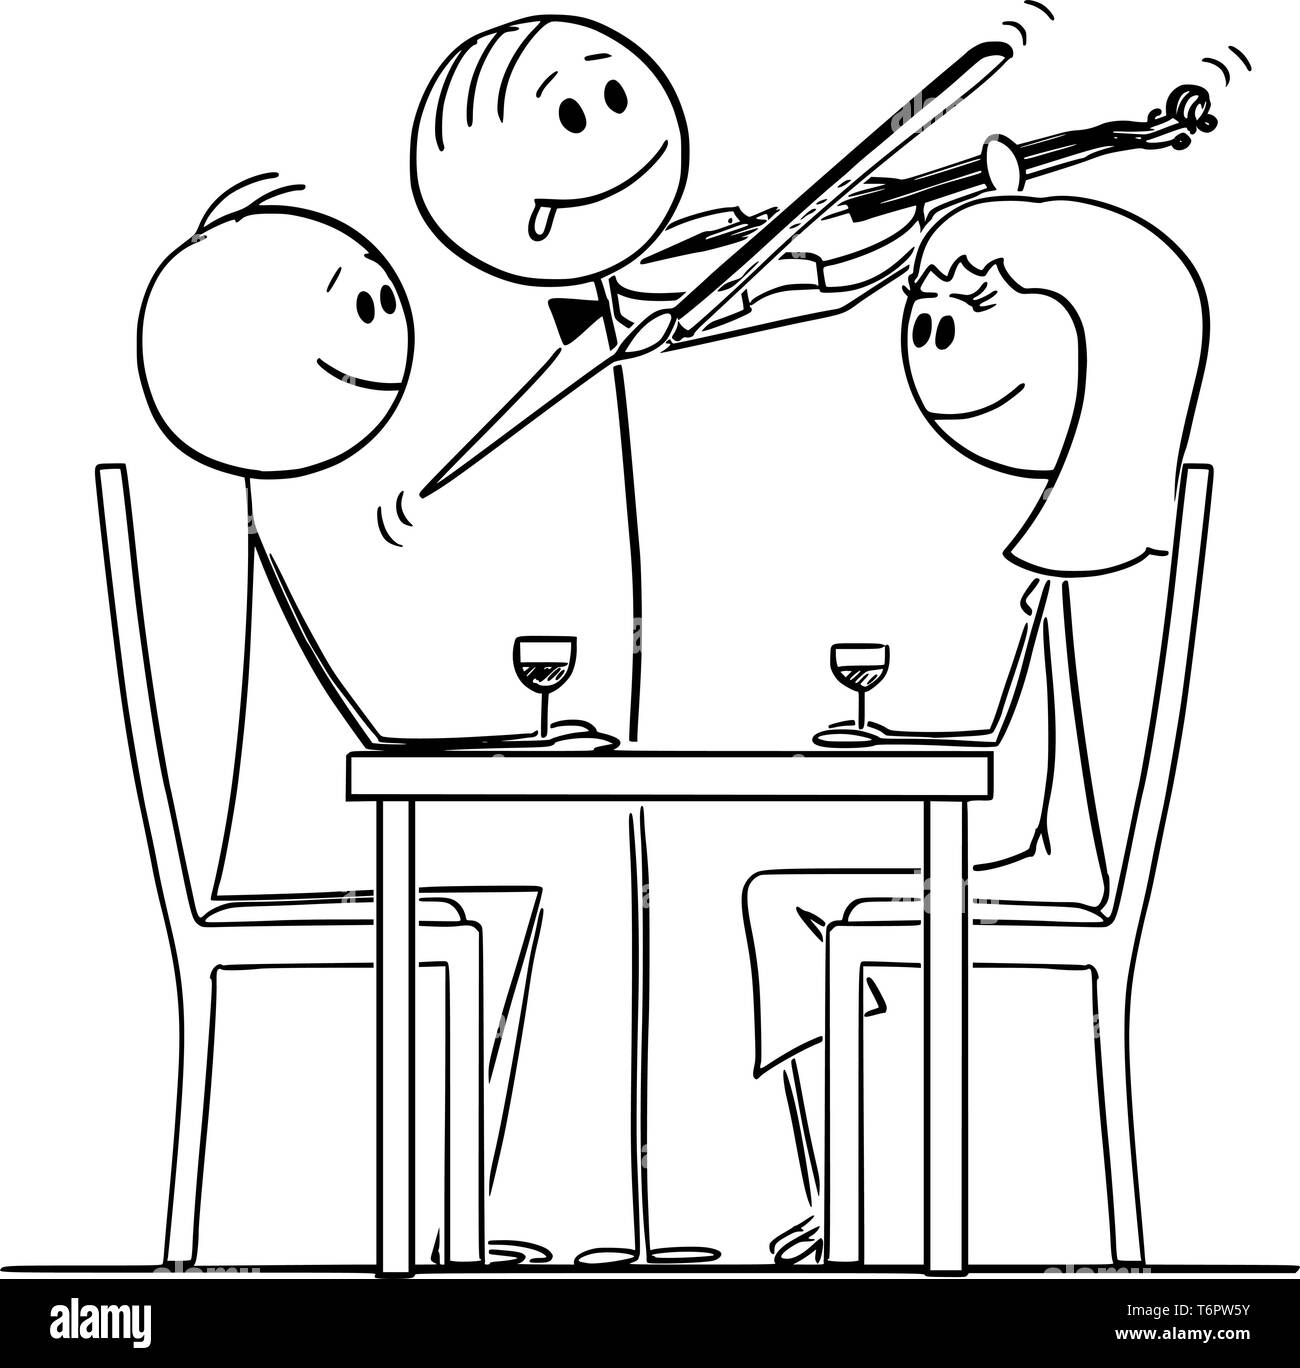 Cartoon stick figure drawing conceptual illustration of loving couple of man and woman sitting behind table in restaurantwhile violinist is playing romantic music. - Stock Vector